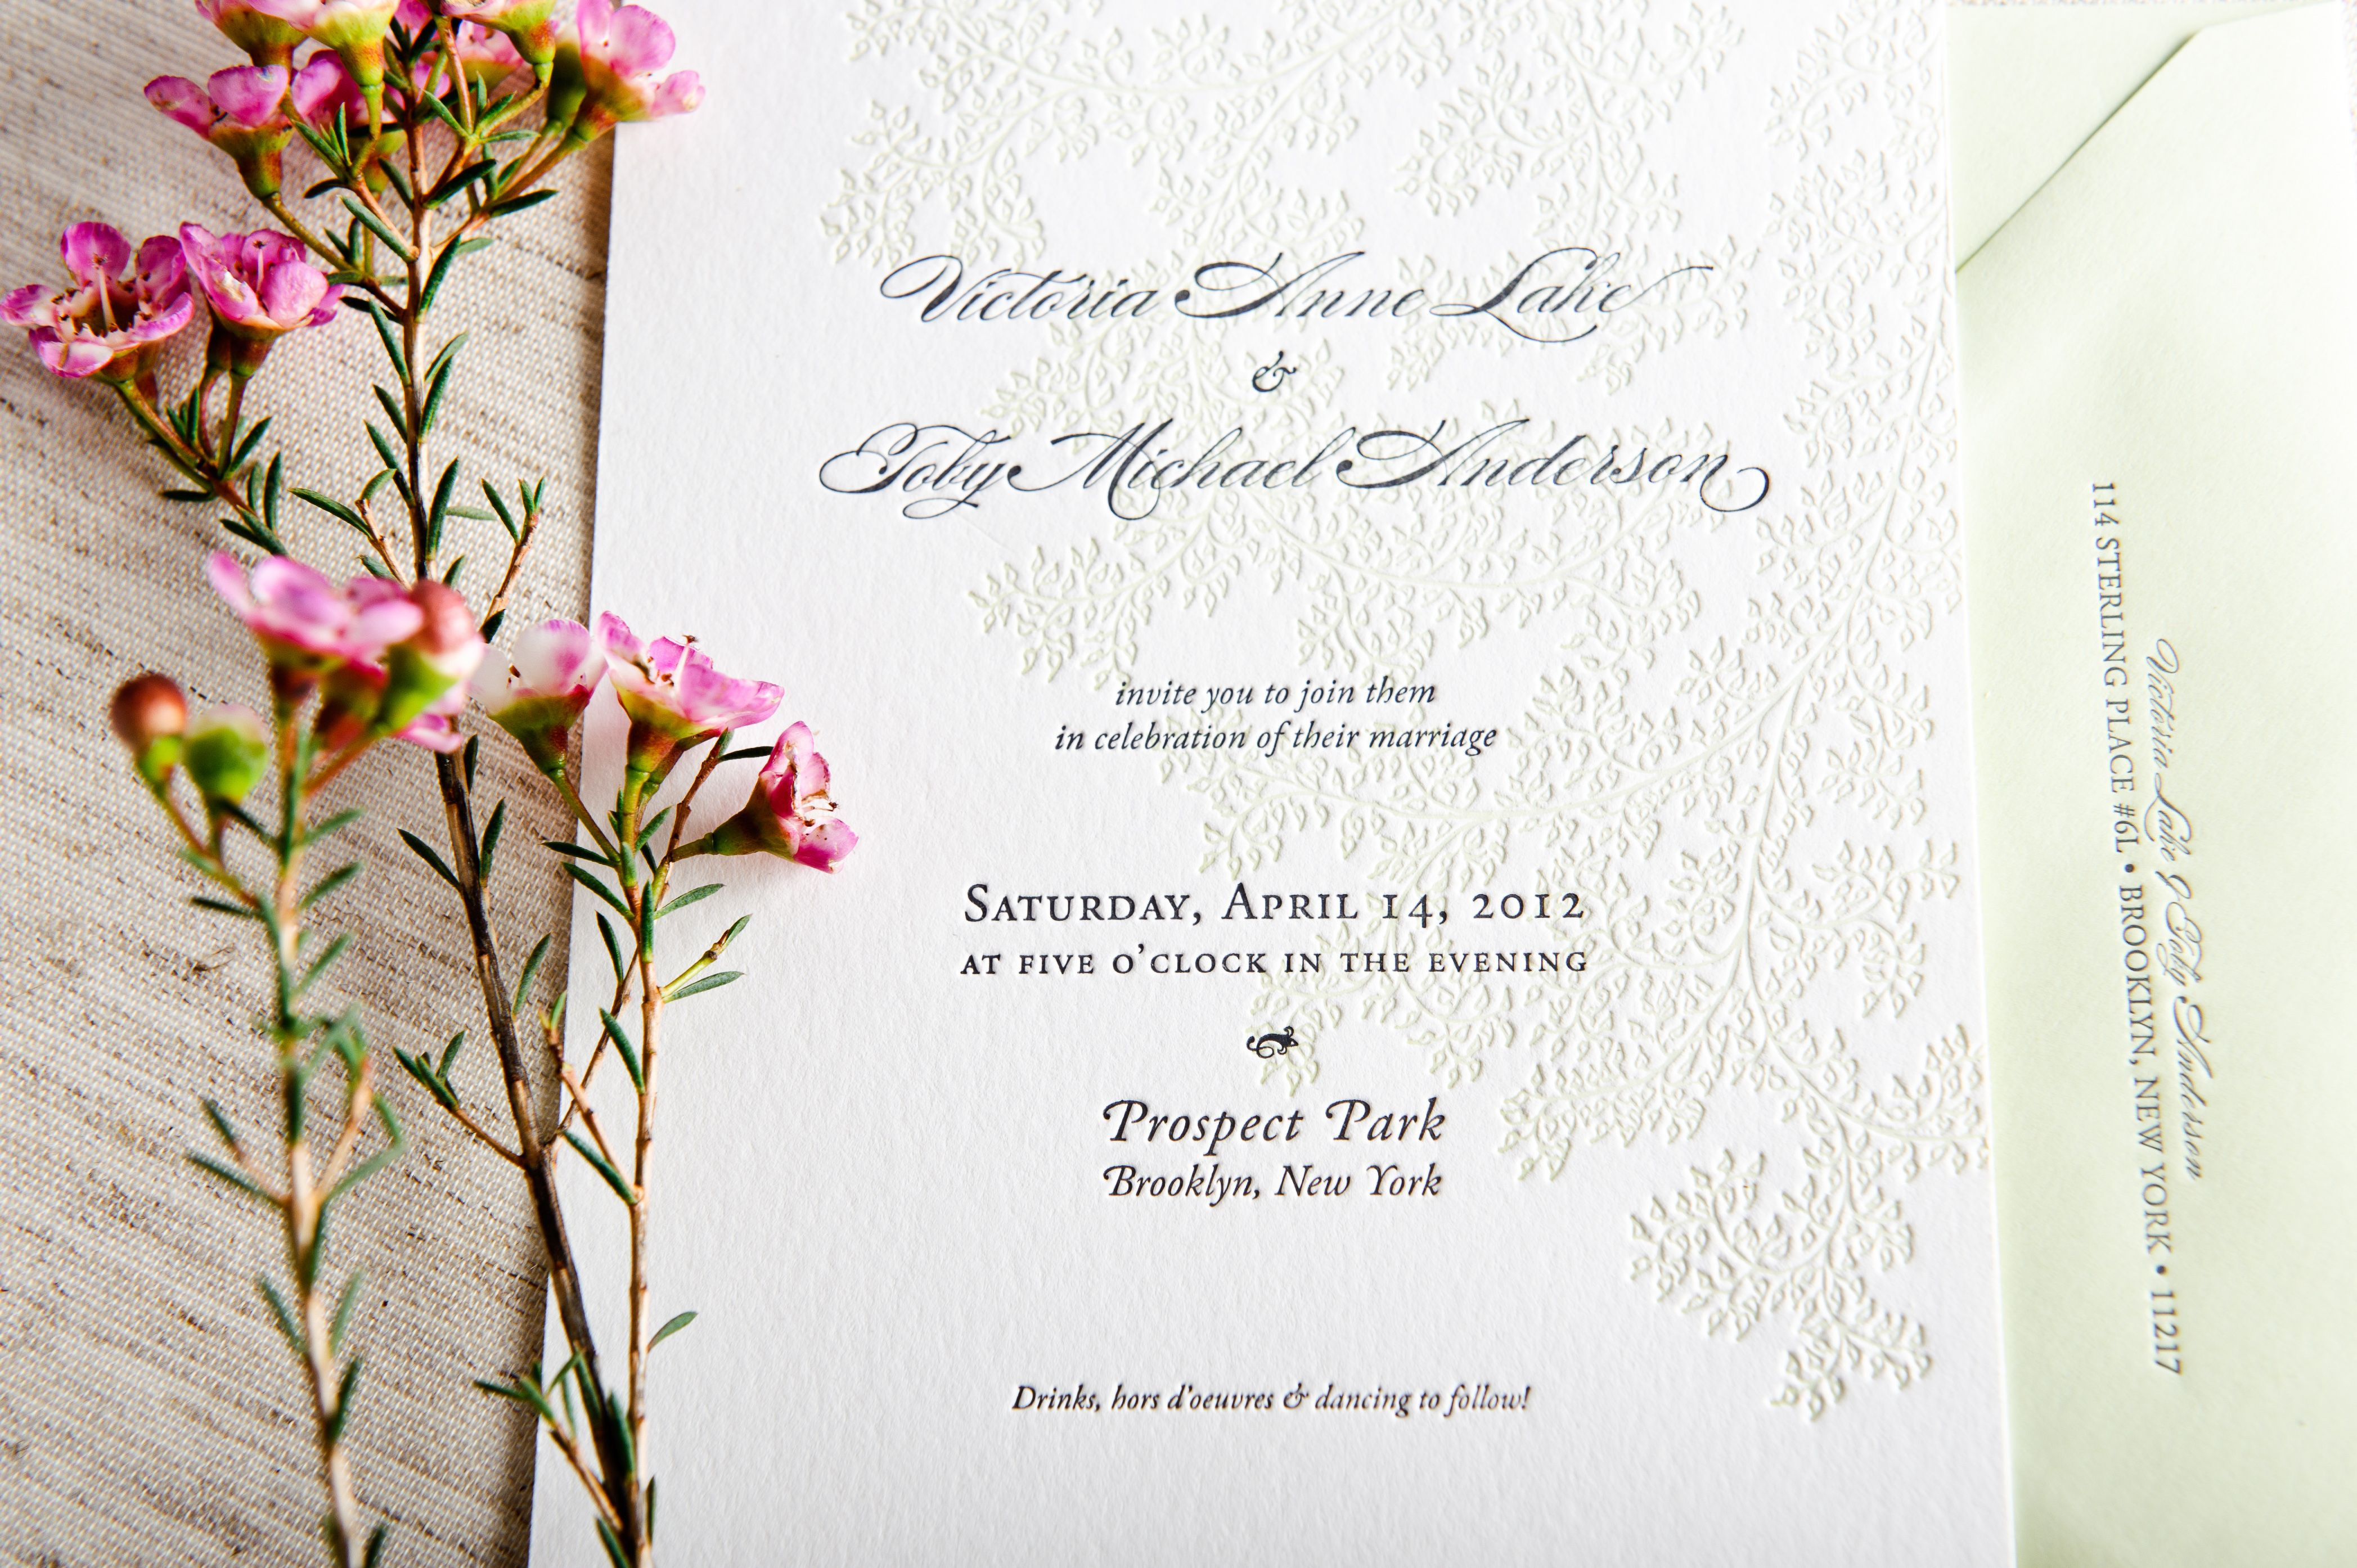 17 Best images about wedding invitations – Sample Marriage Invitation Cards